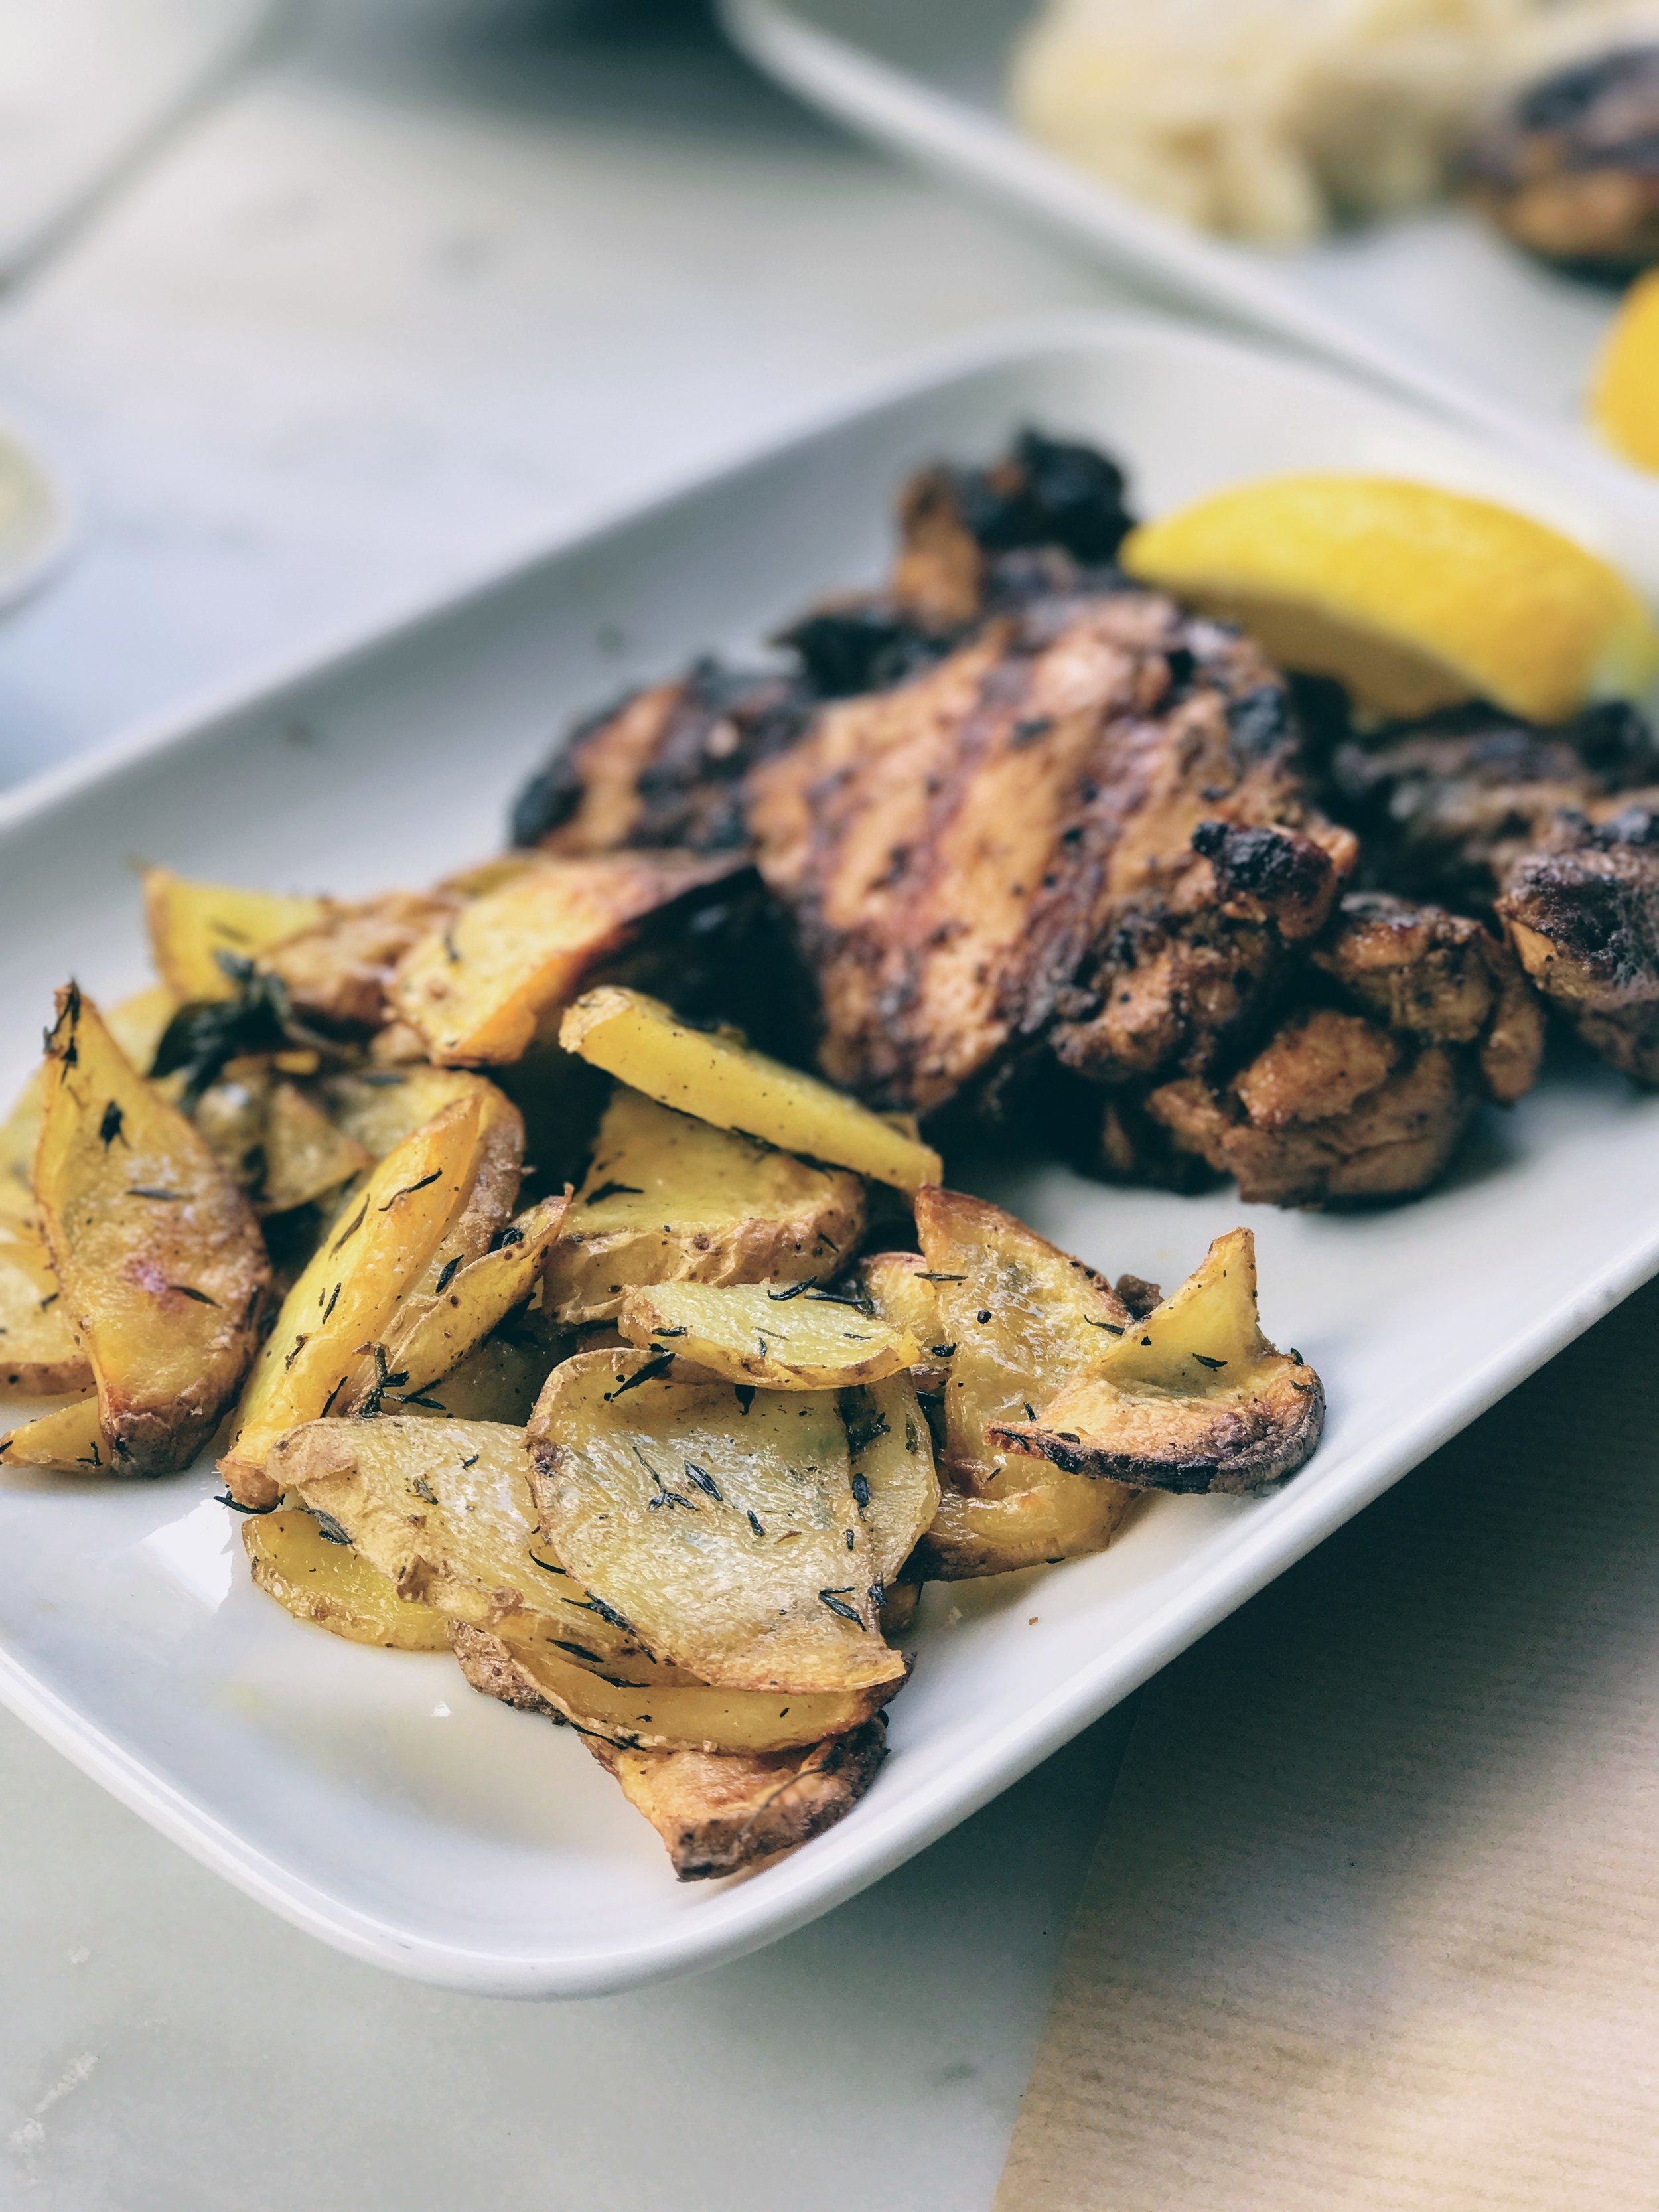 Tender chicken thigh fillets with oven-cooked potatoes